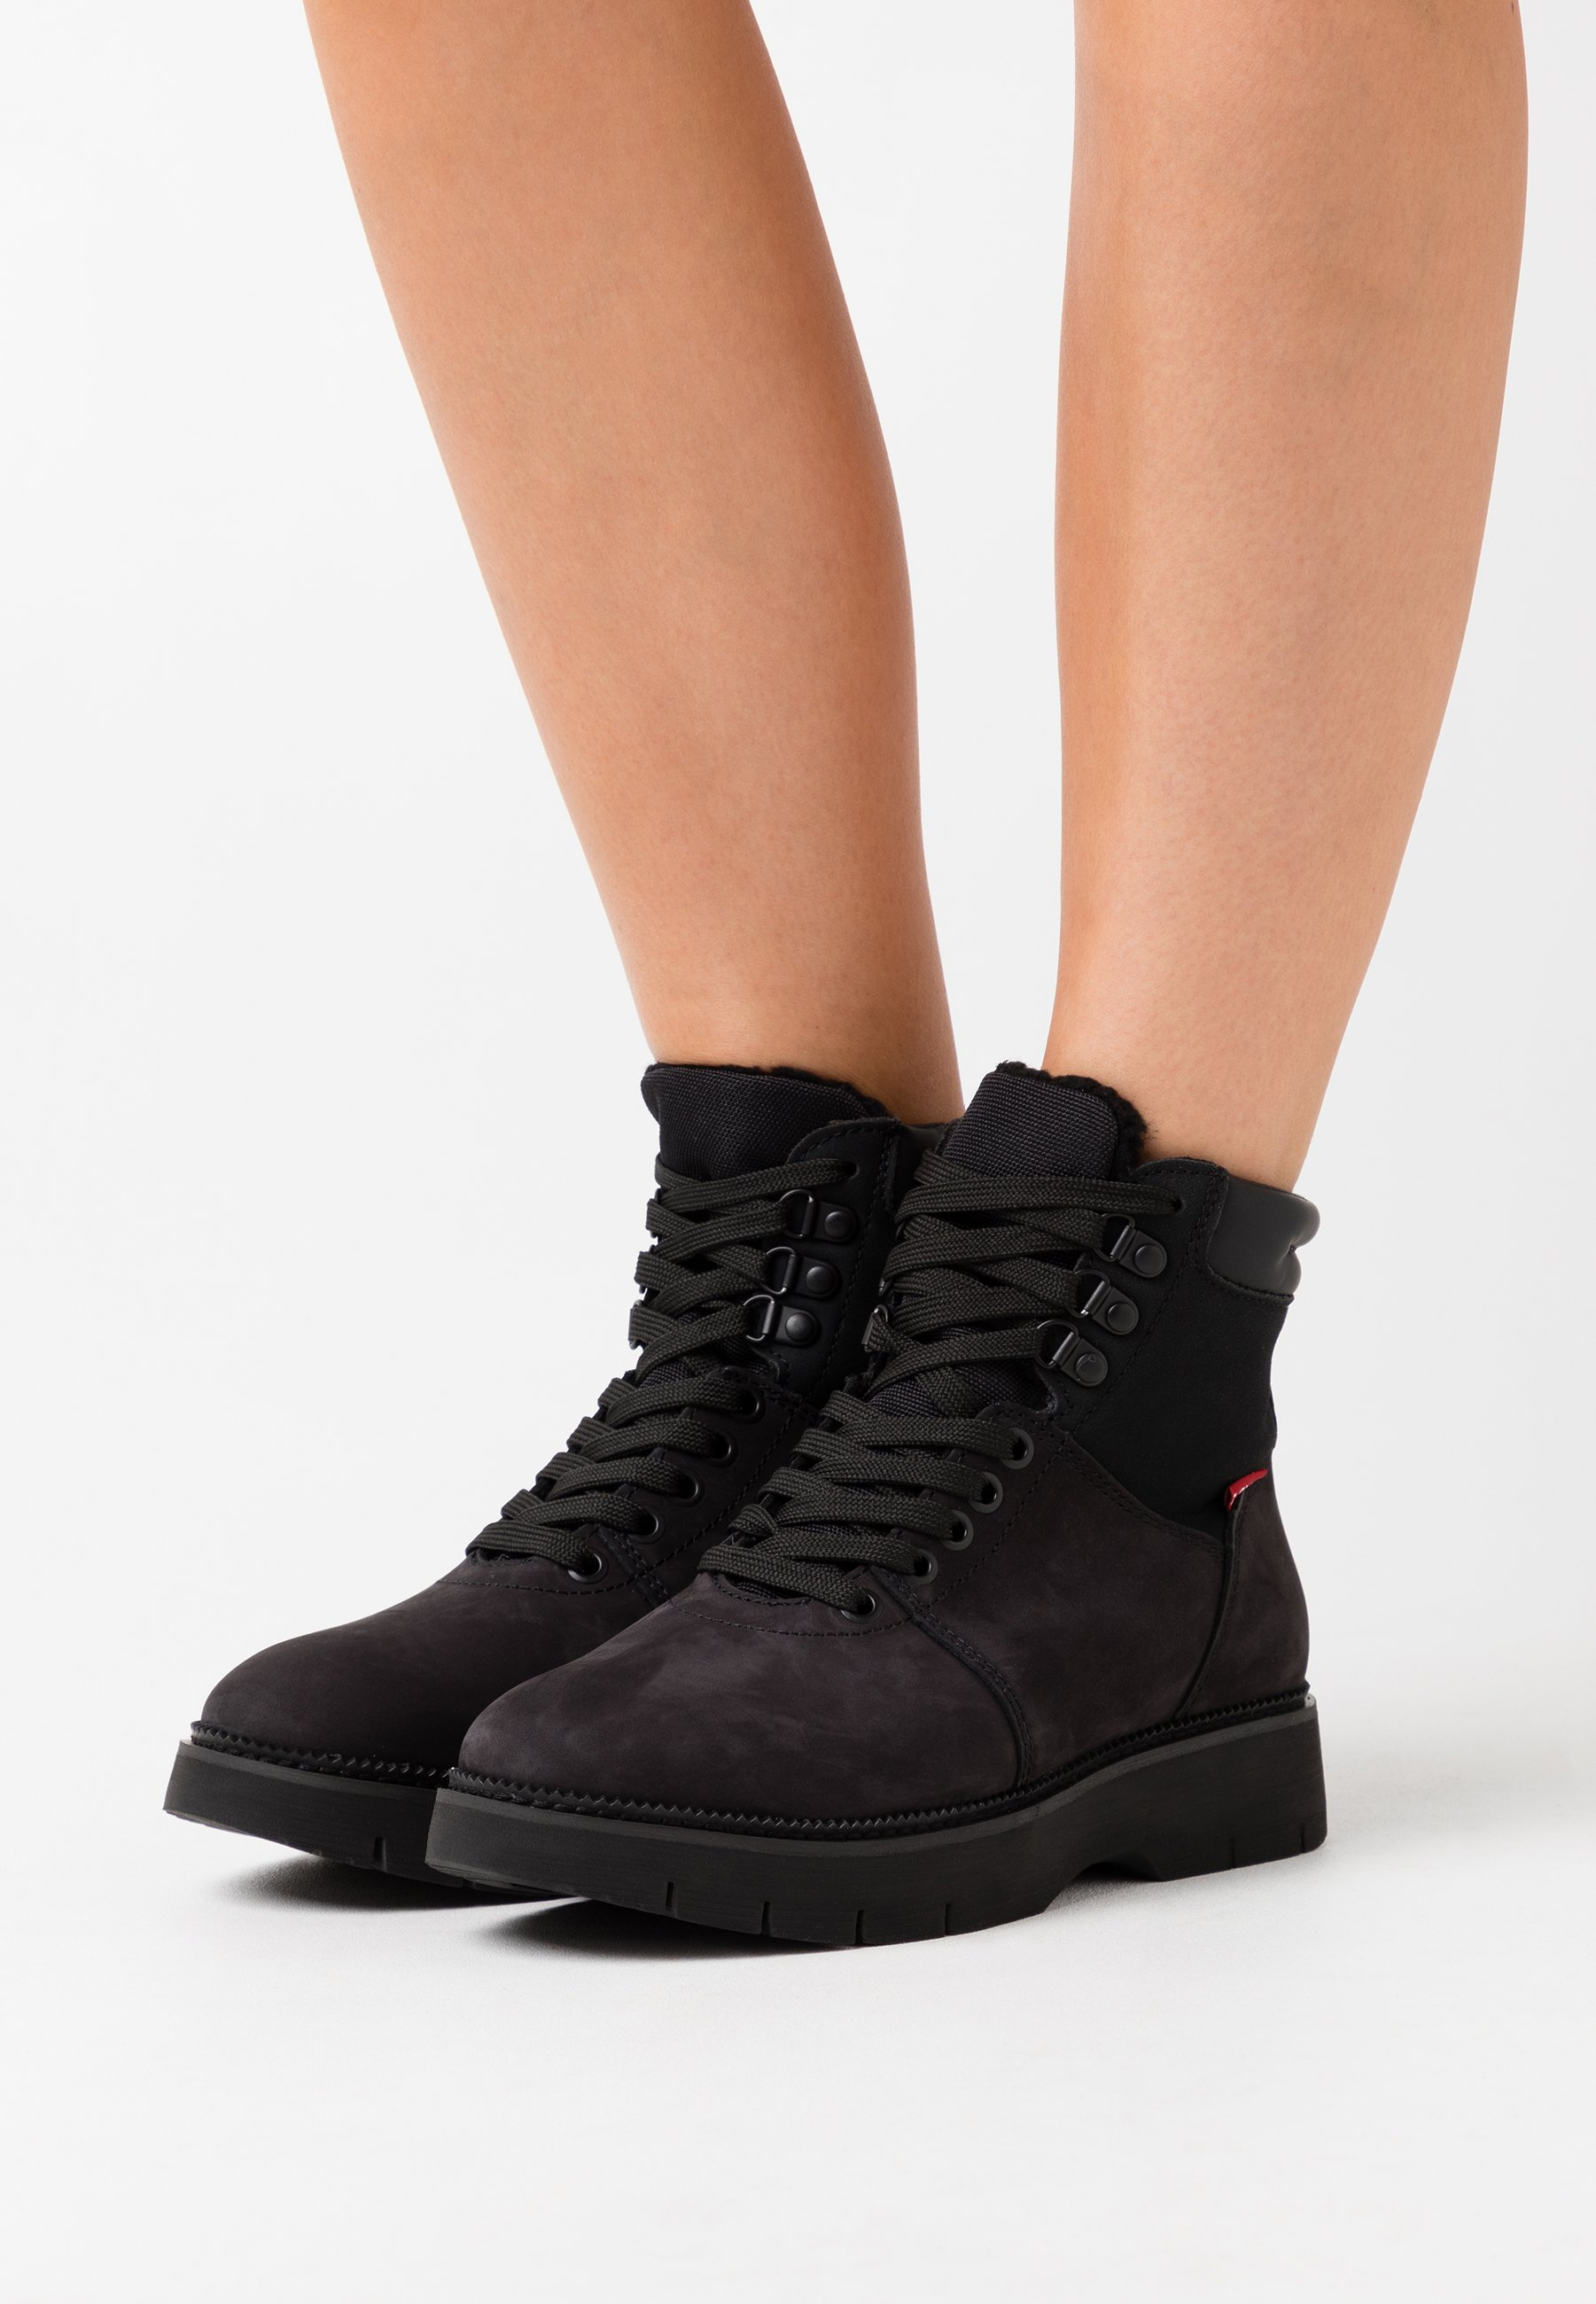 2020 Discount Cool Women's Shoes Levi's® JAXY MID Winter boots brilliant black CkcNFCUlT YqYDOt9Xu